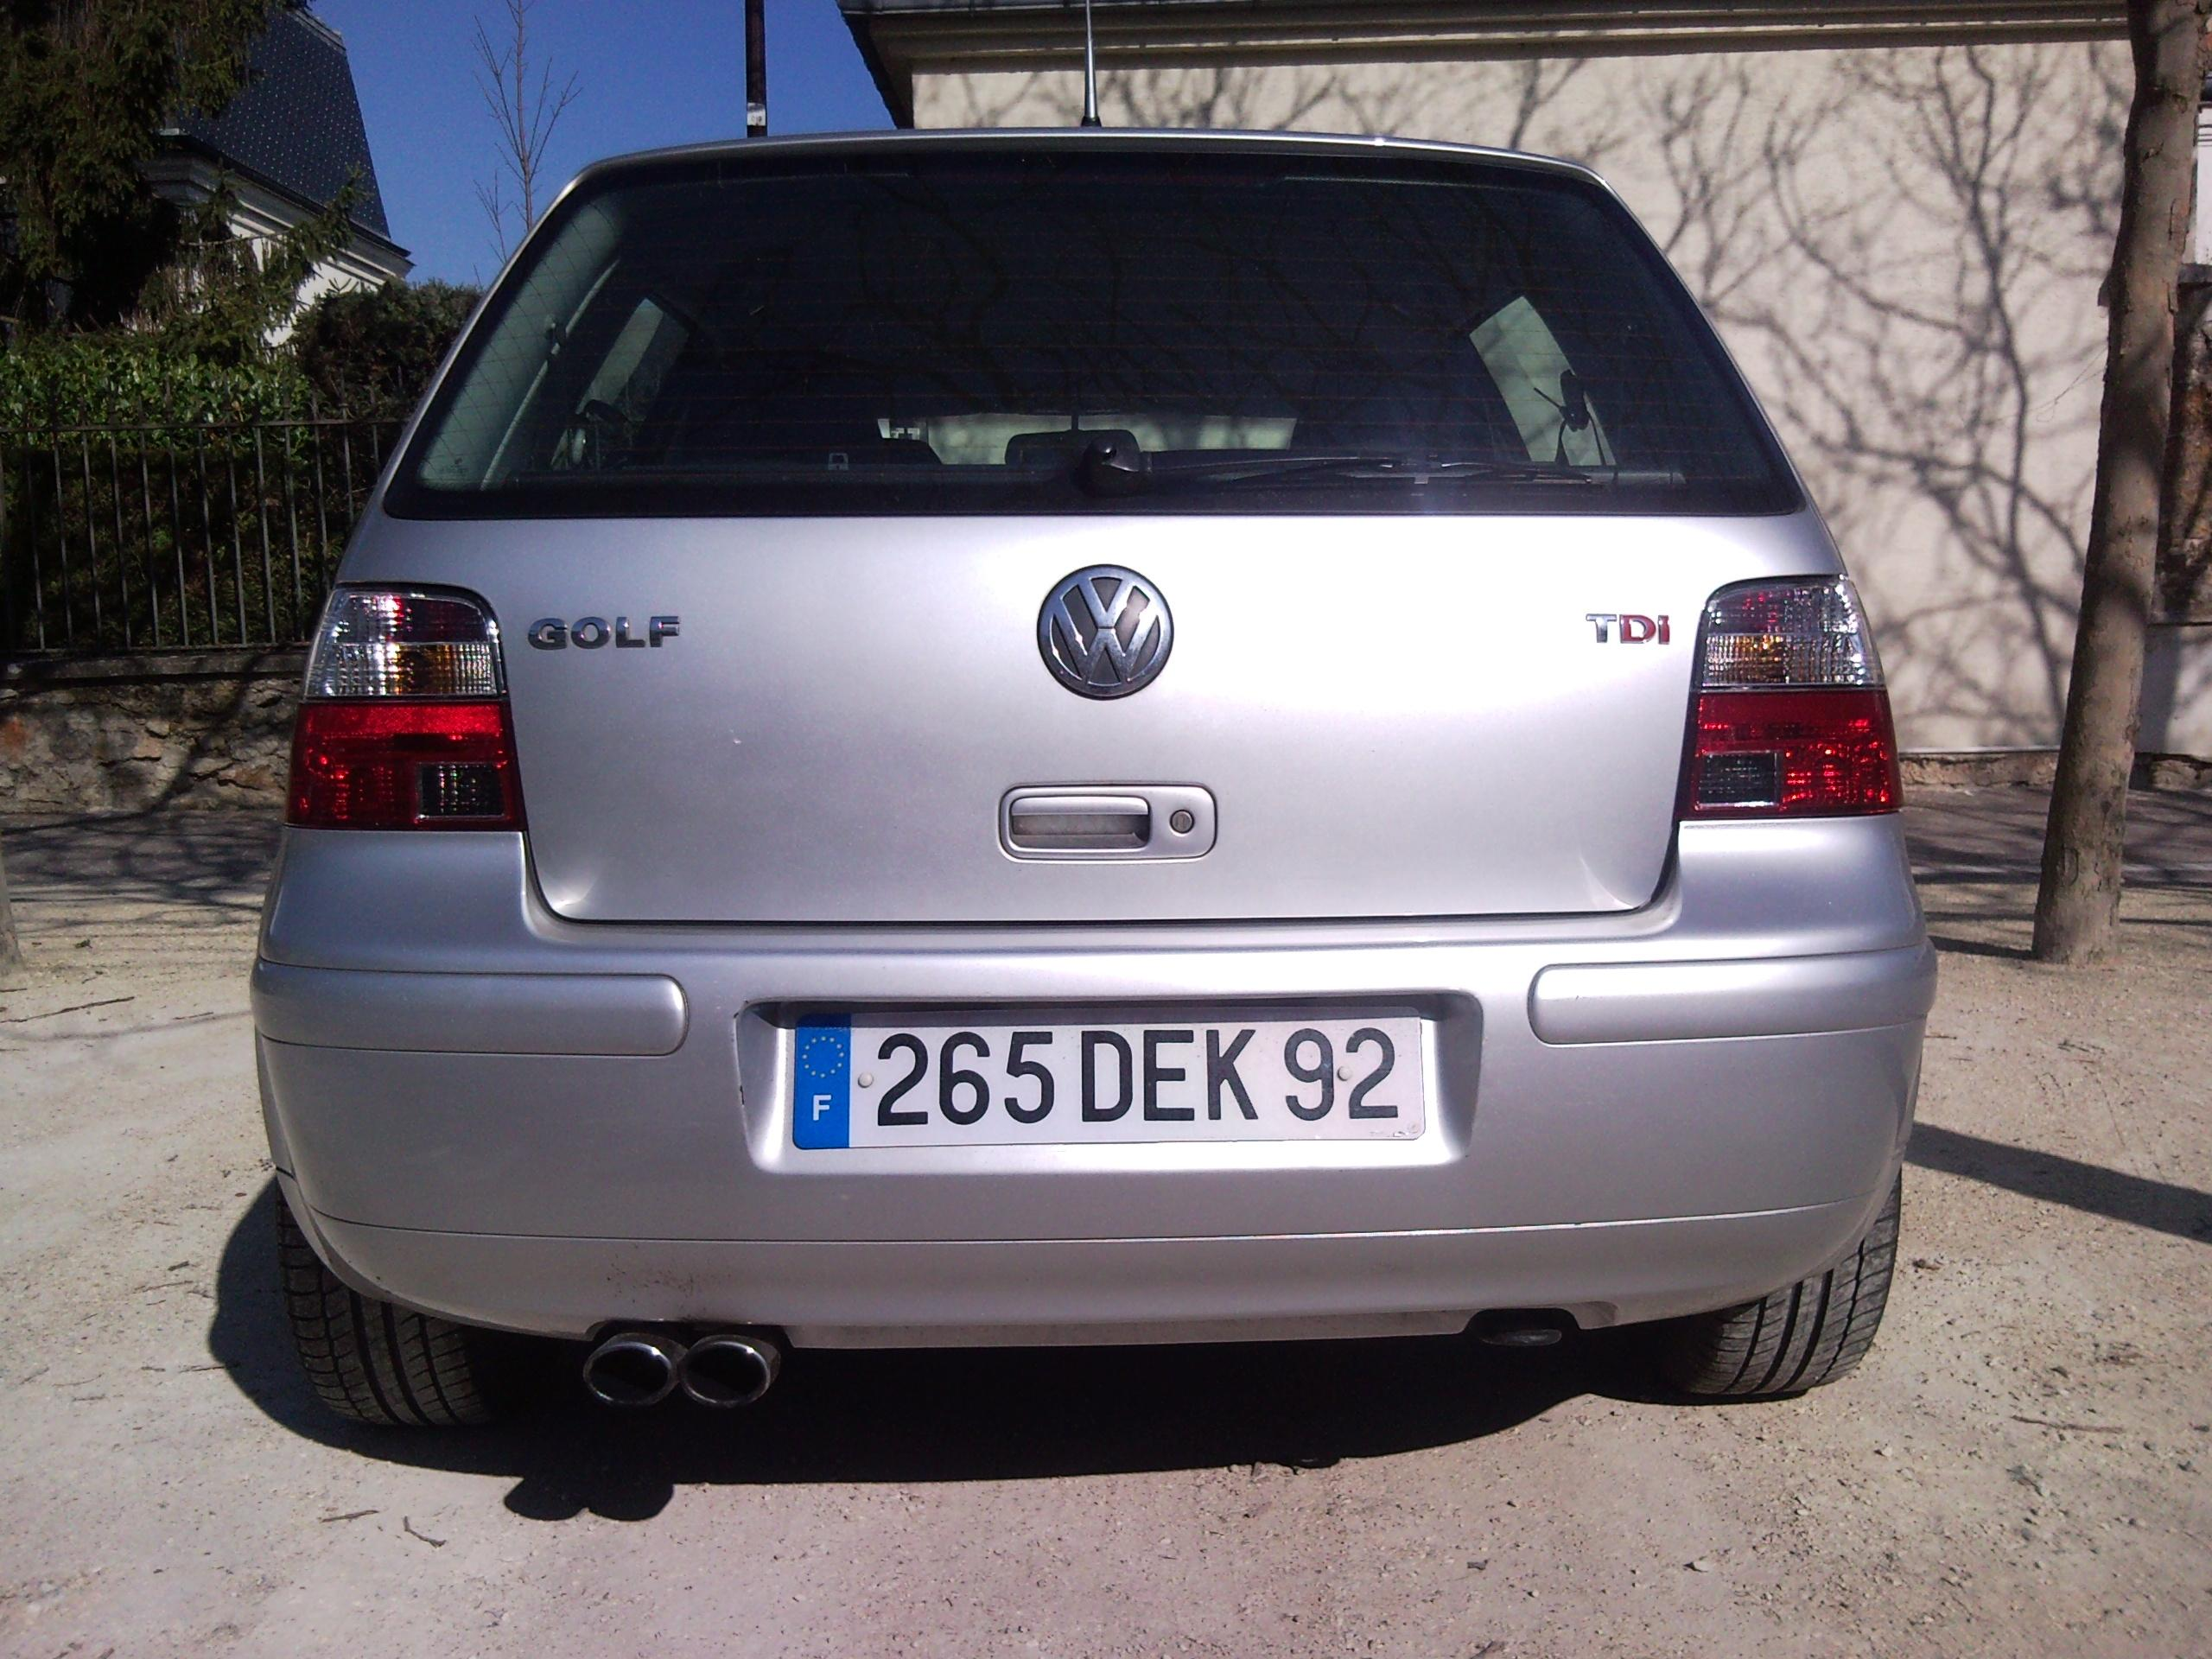 golf iv tdi 115 carat de djice92 garage des golf iv tdi 115 forum volkswagen golf iv. Black Bedroom Furniture Sets. Home Design Ideas